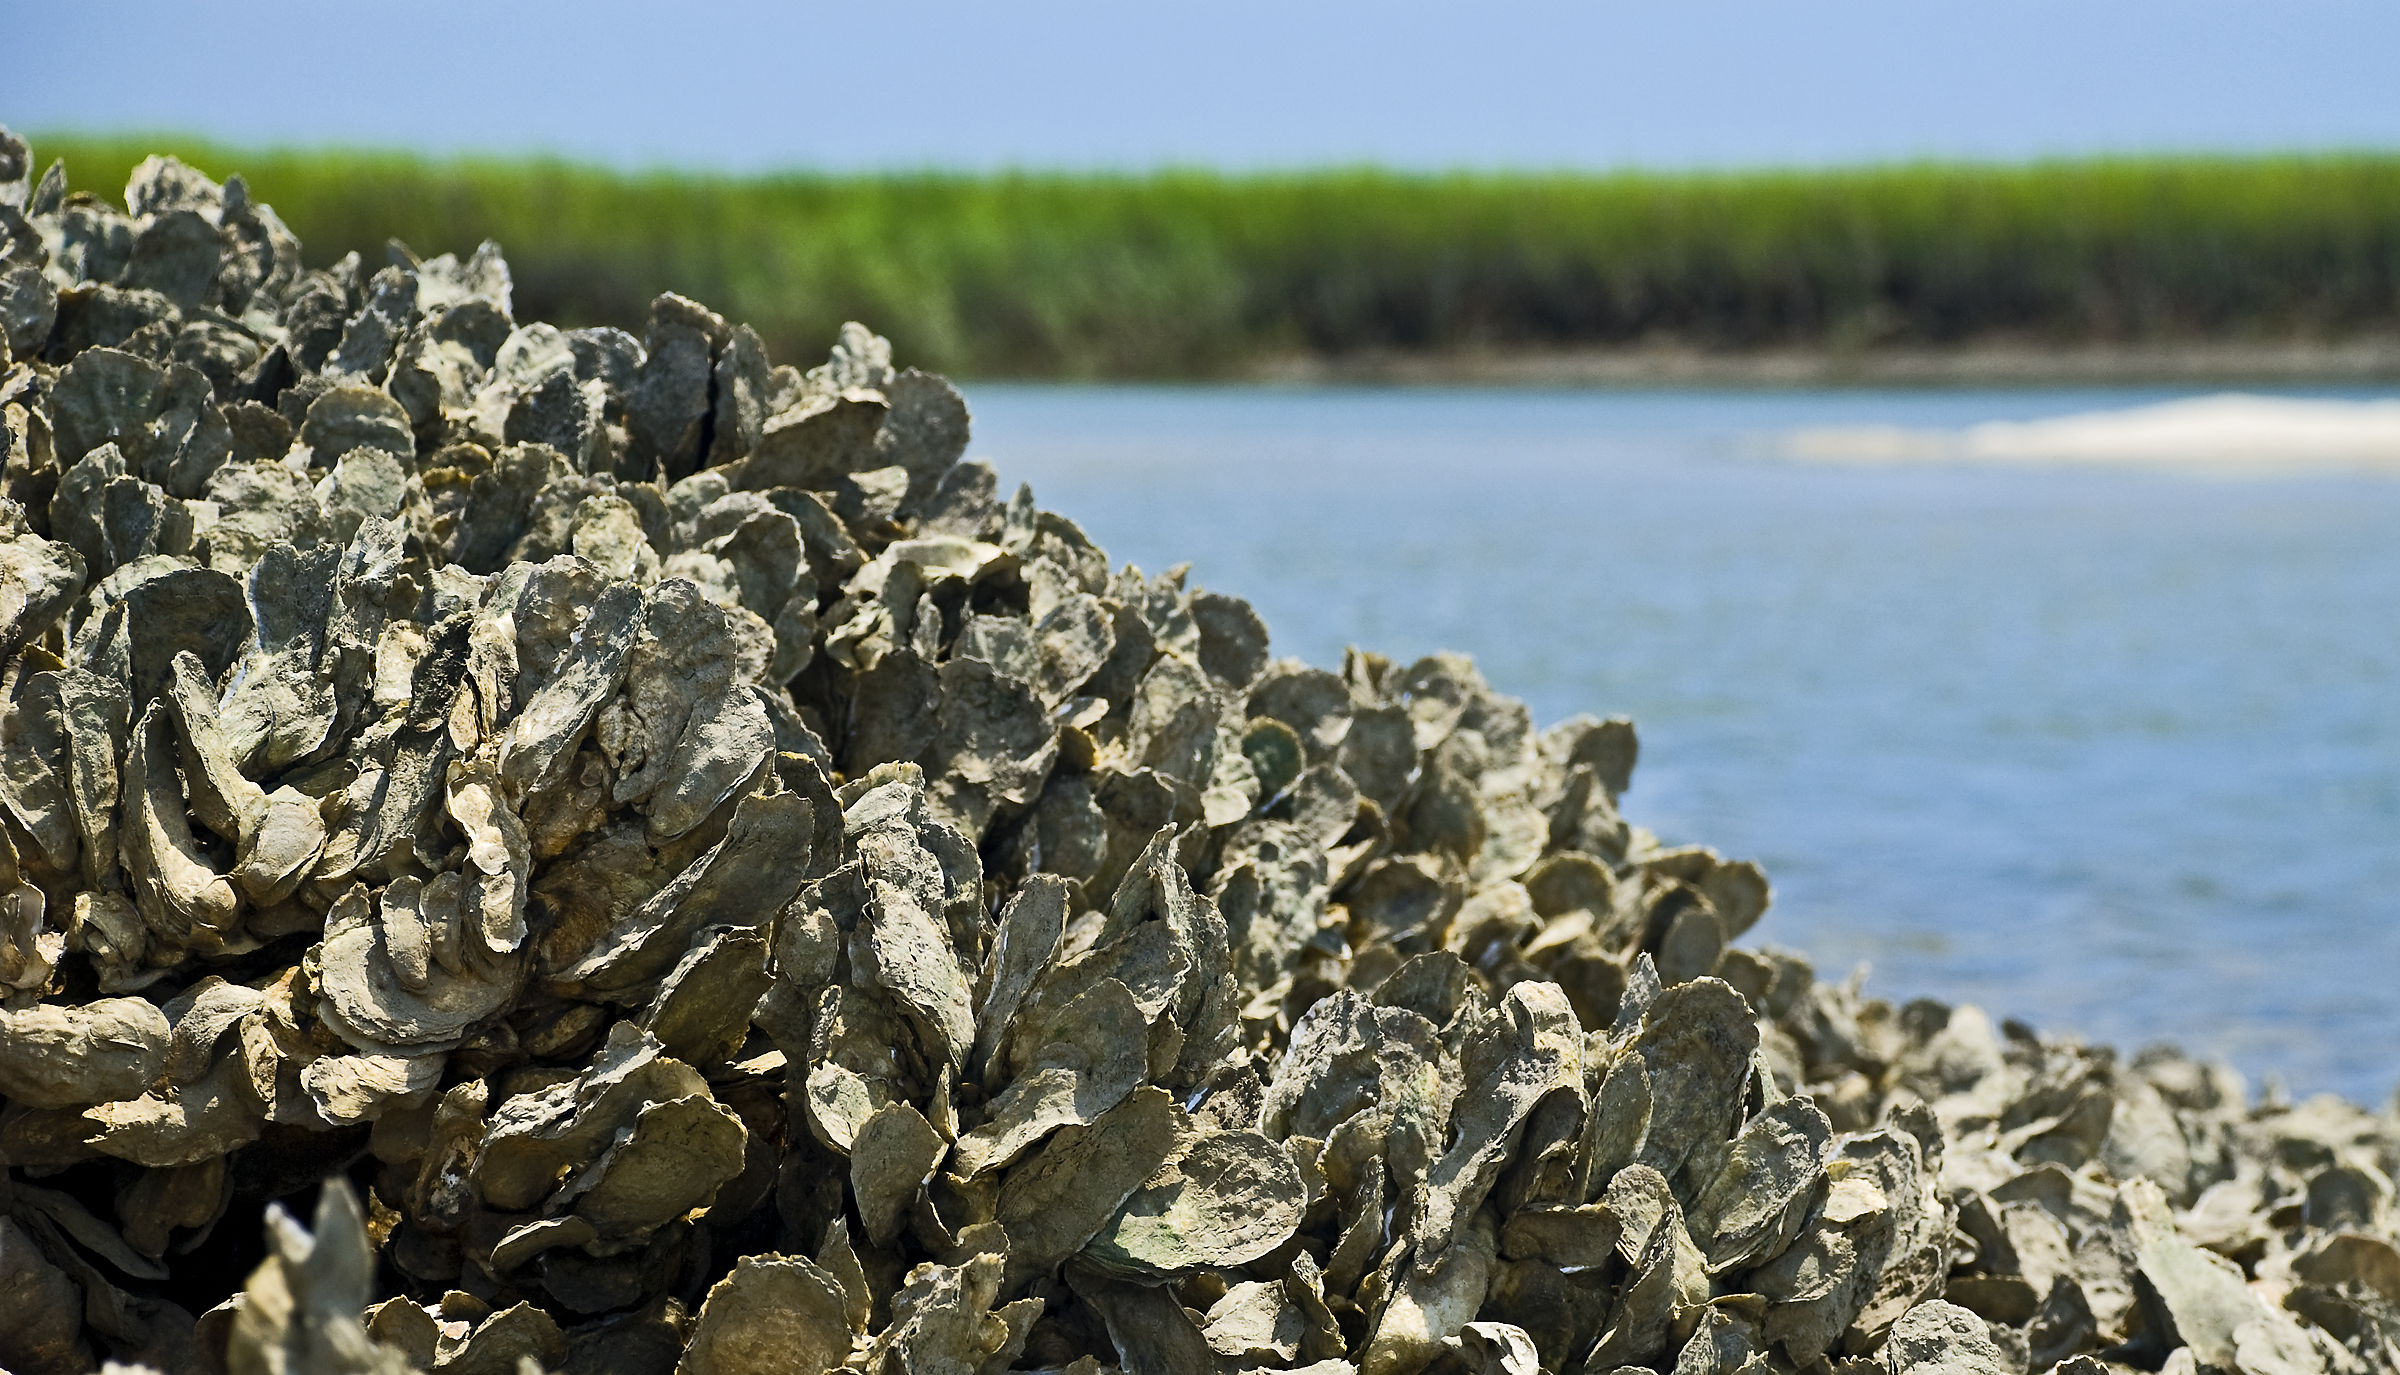 Natural Oyster Reef Oyster-tecture - 99% I...